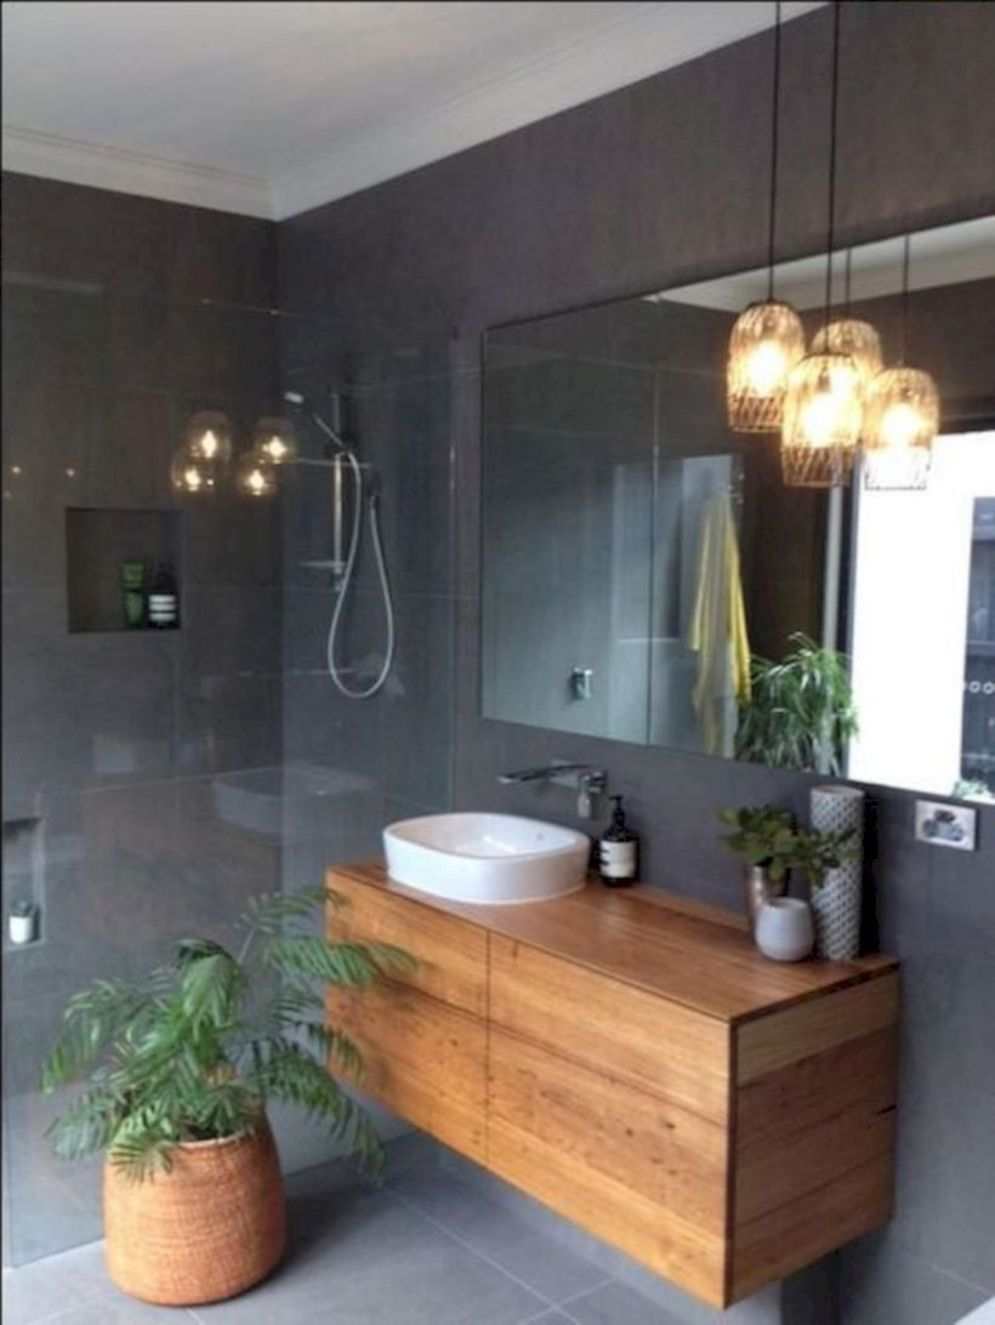 Timeless bathroom designs with wood accents enhancing more natural vibes Image 35